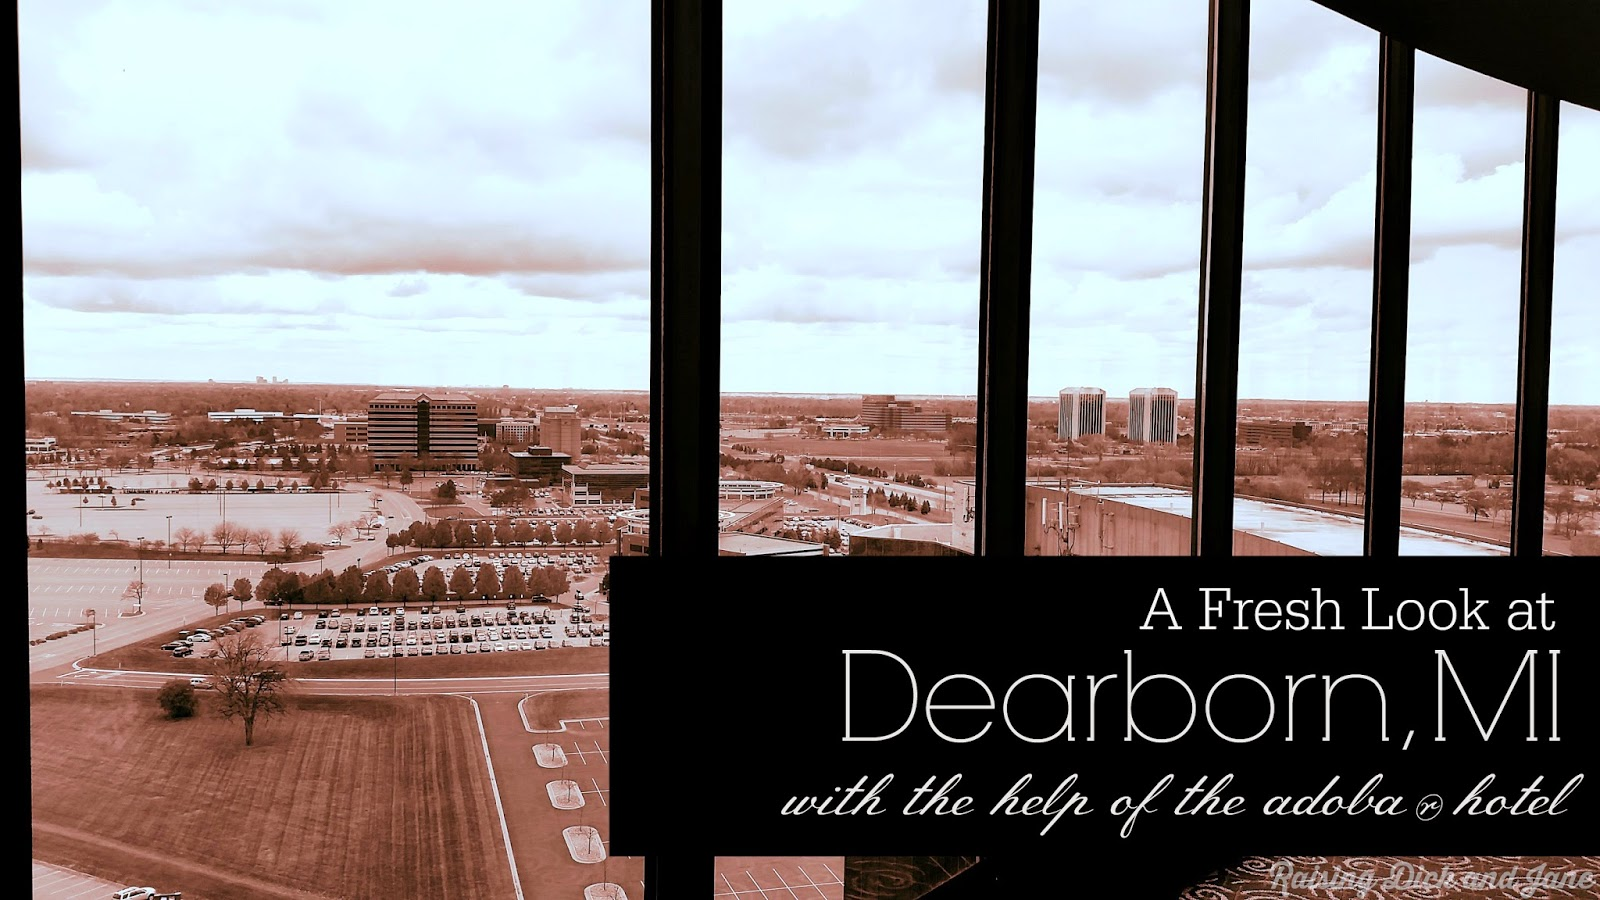 #ad #ecotravelwithadoba A Fresh Look at Dearborn Michigan